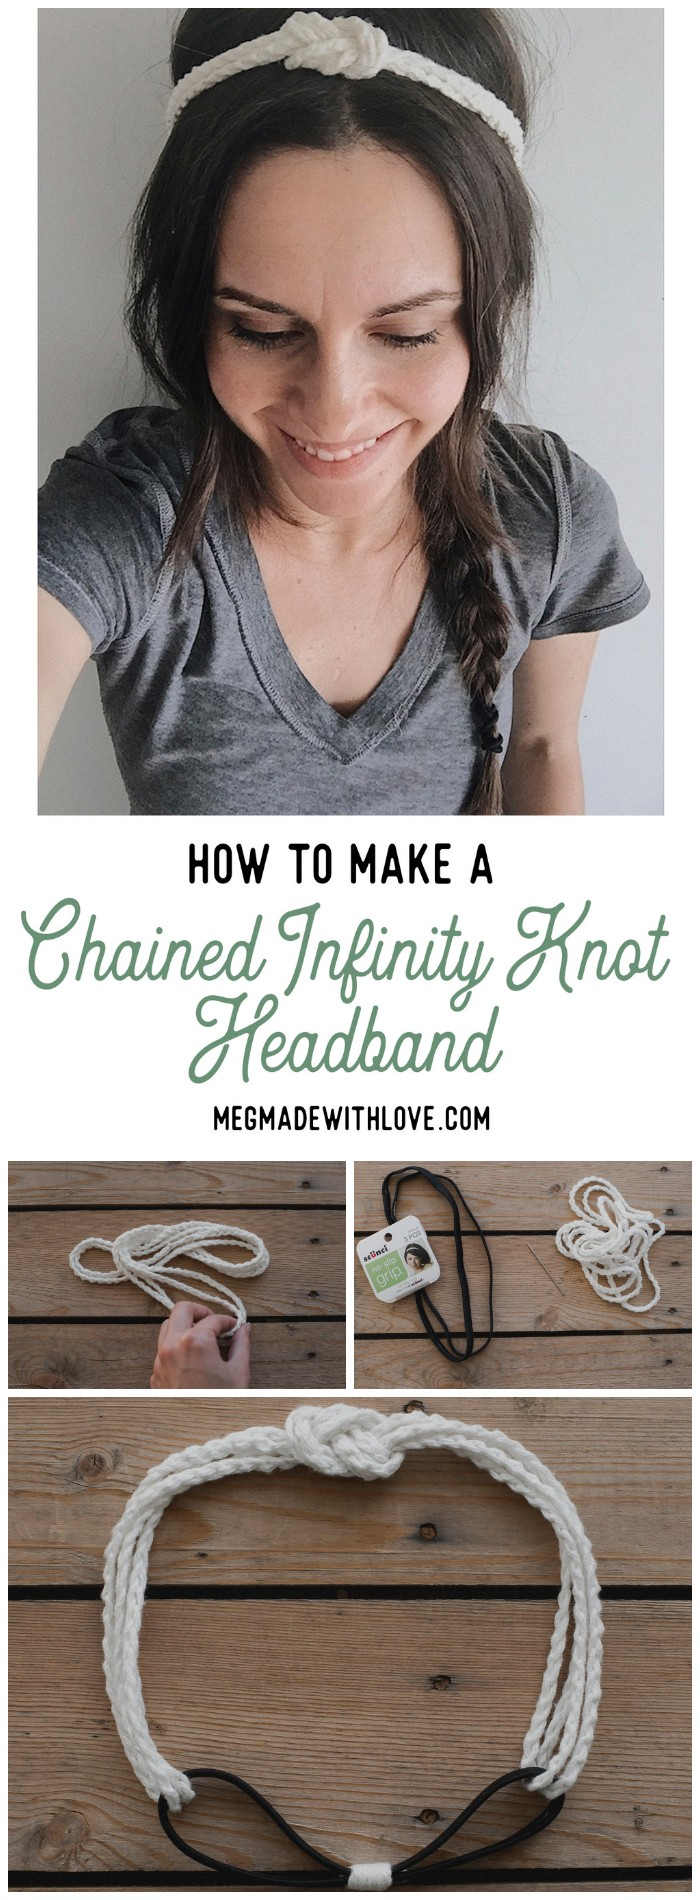 How to Make a Chained Infinity Knot Headband